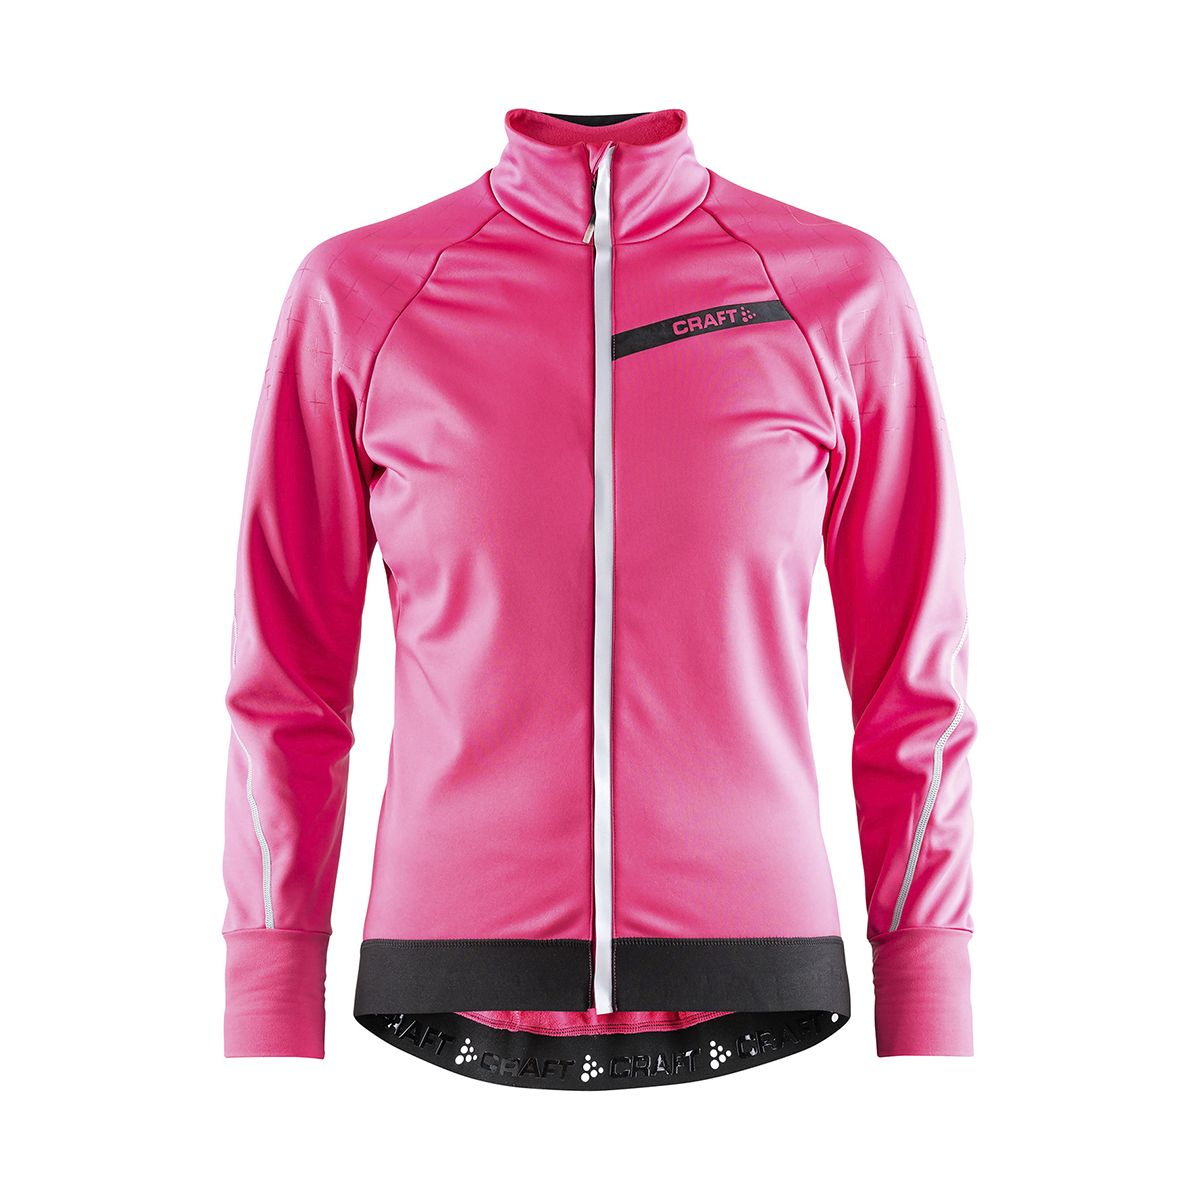 BELLE GLOW JACKET W Damen Windjacke